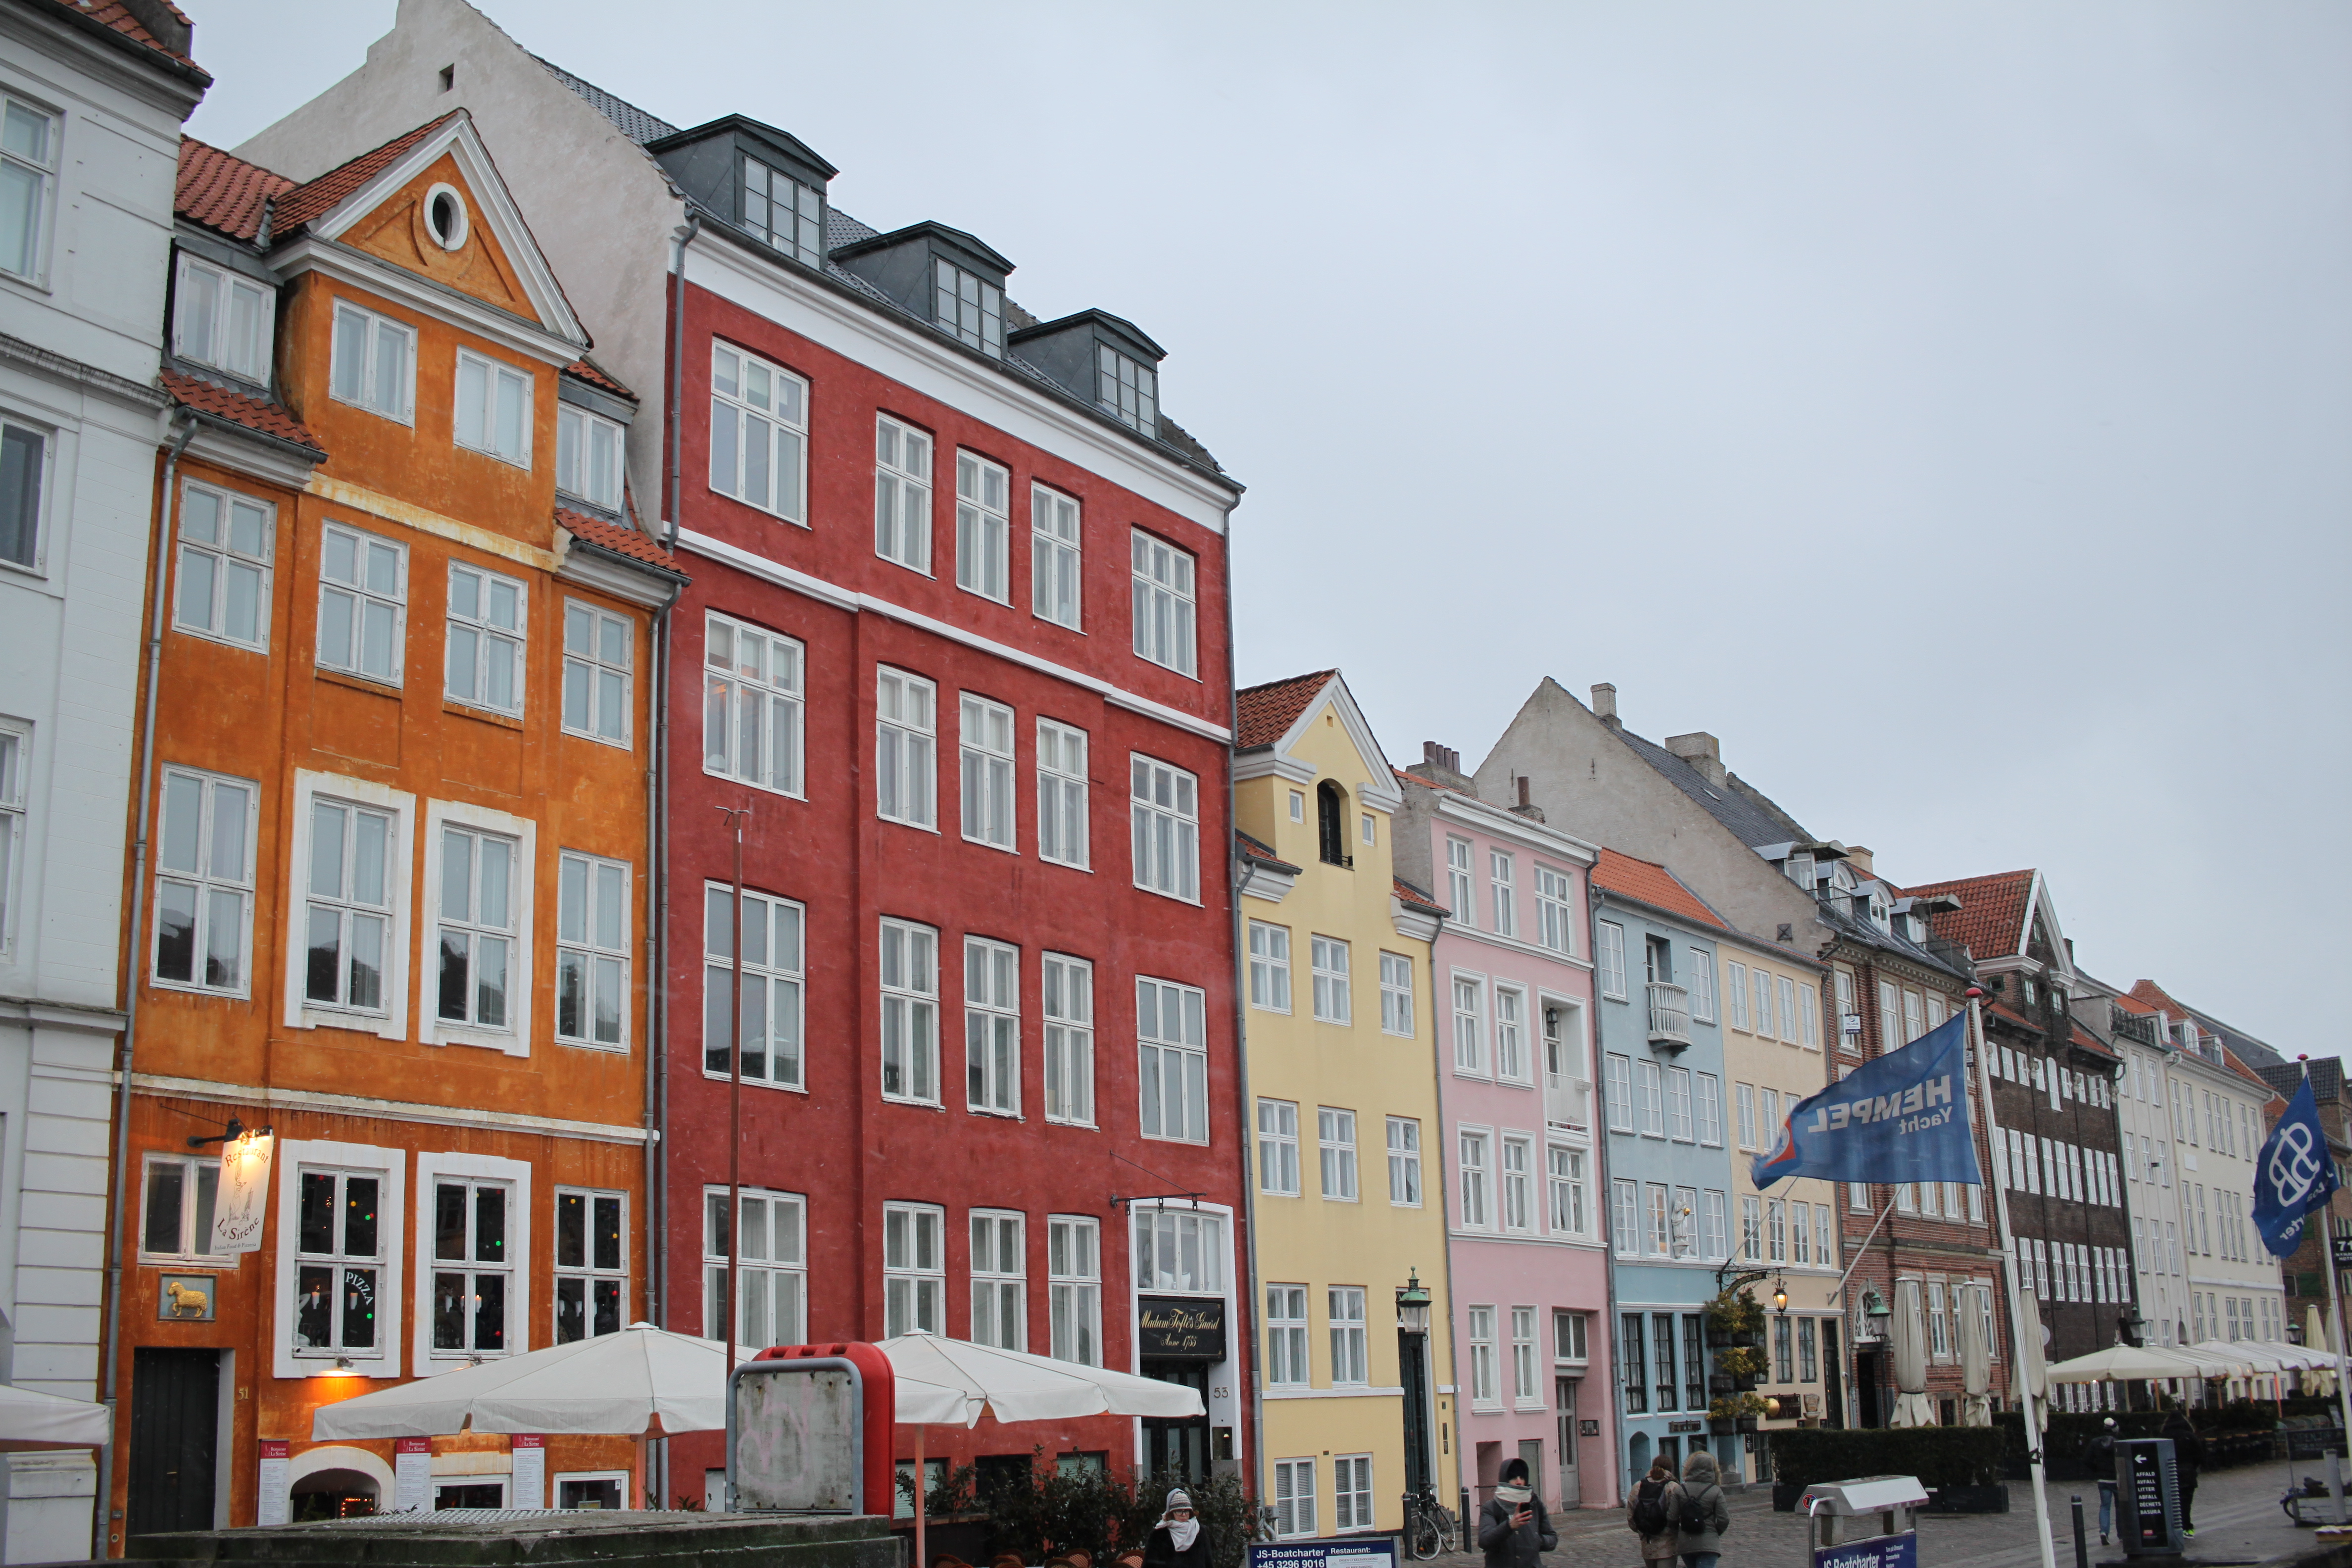 842201a1f9 How to spend a few days in Copenhagen I wit & whimsy